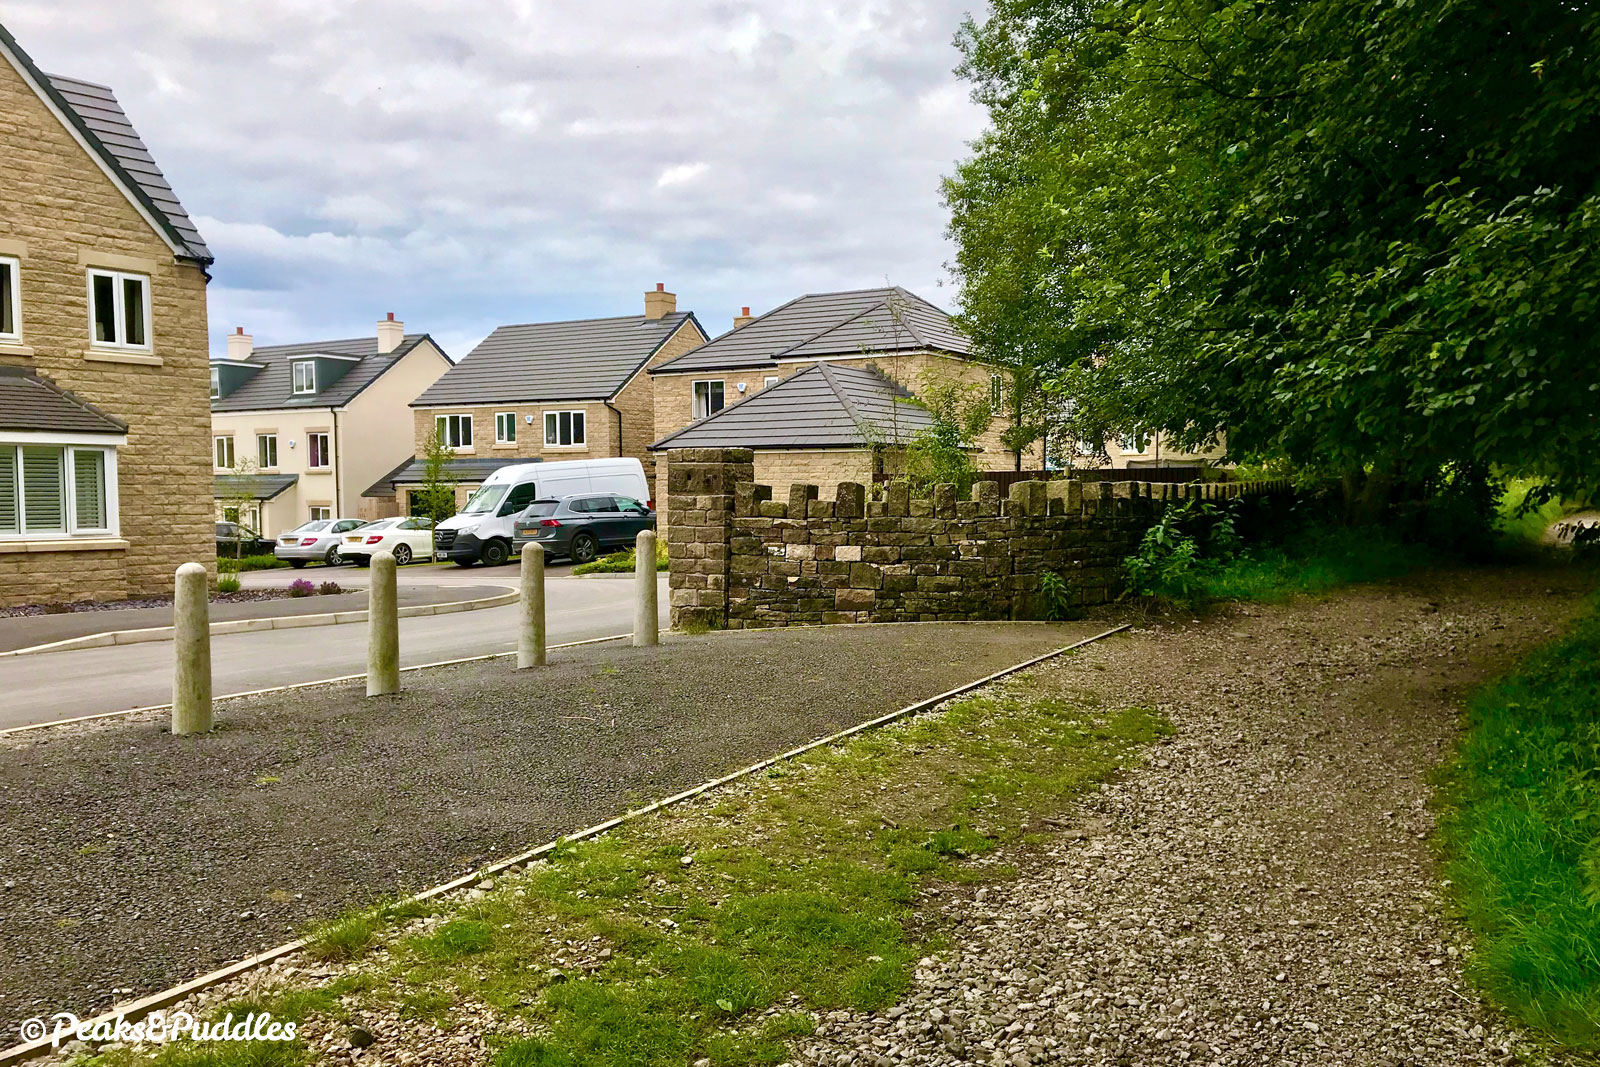 For the many new residents here, with superb access onto the trail, it could provide an easy, green route into the nearby major centre of Chapel-en-le-Frith.